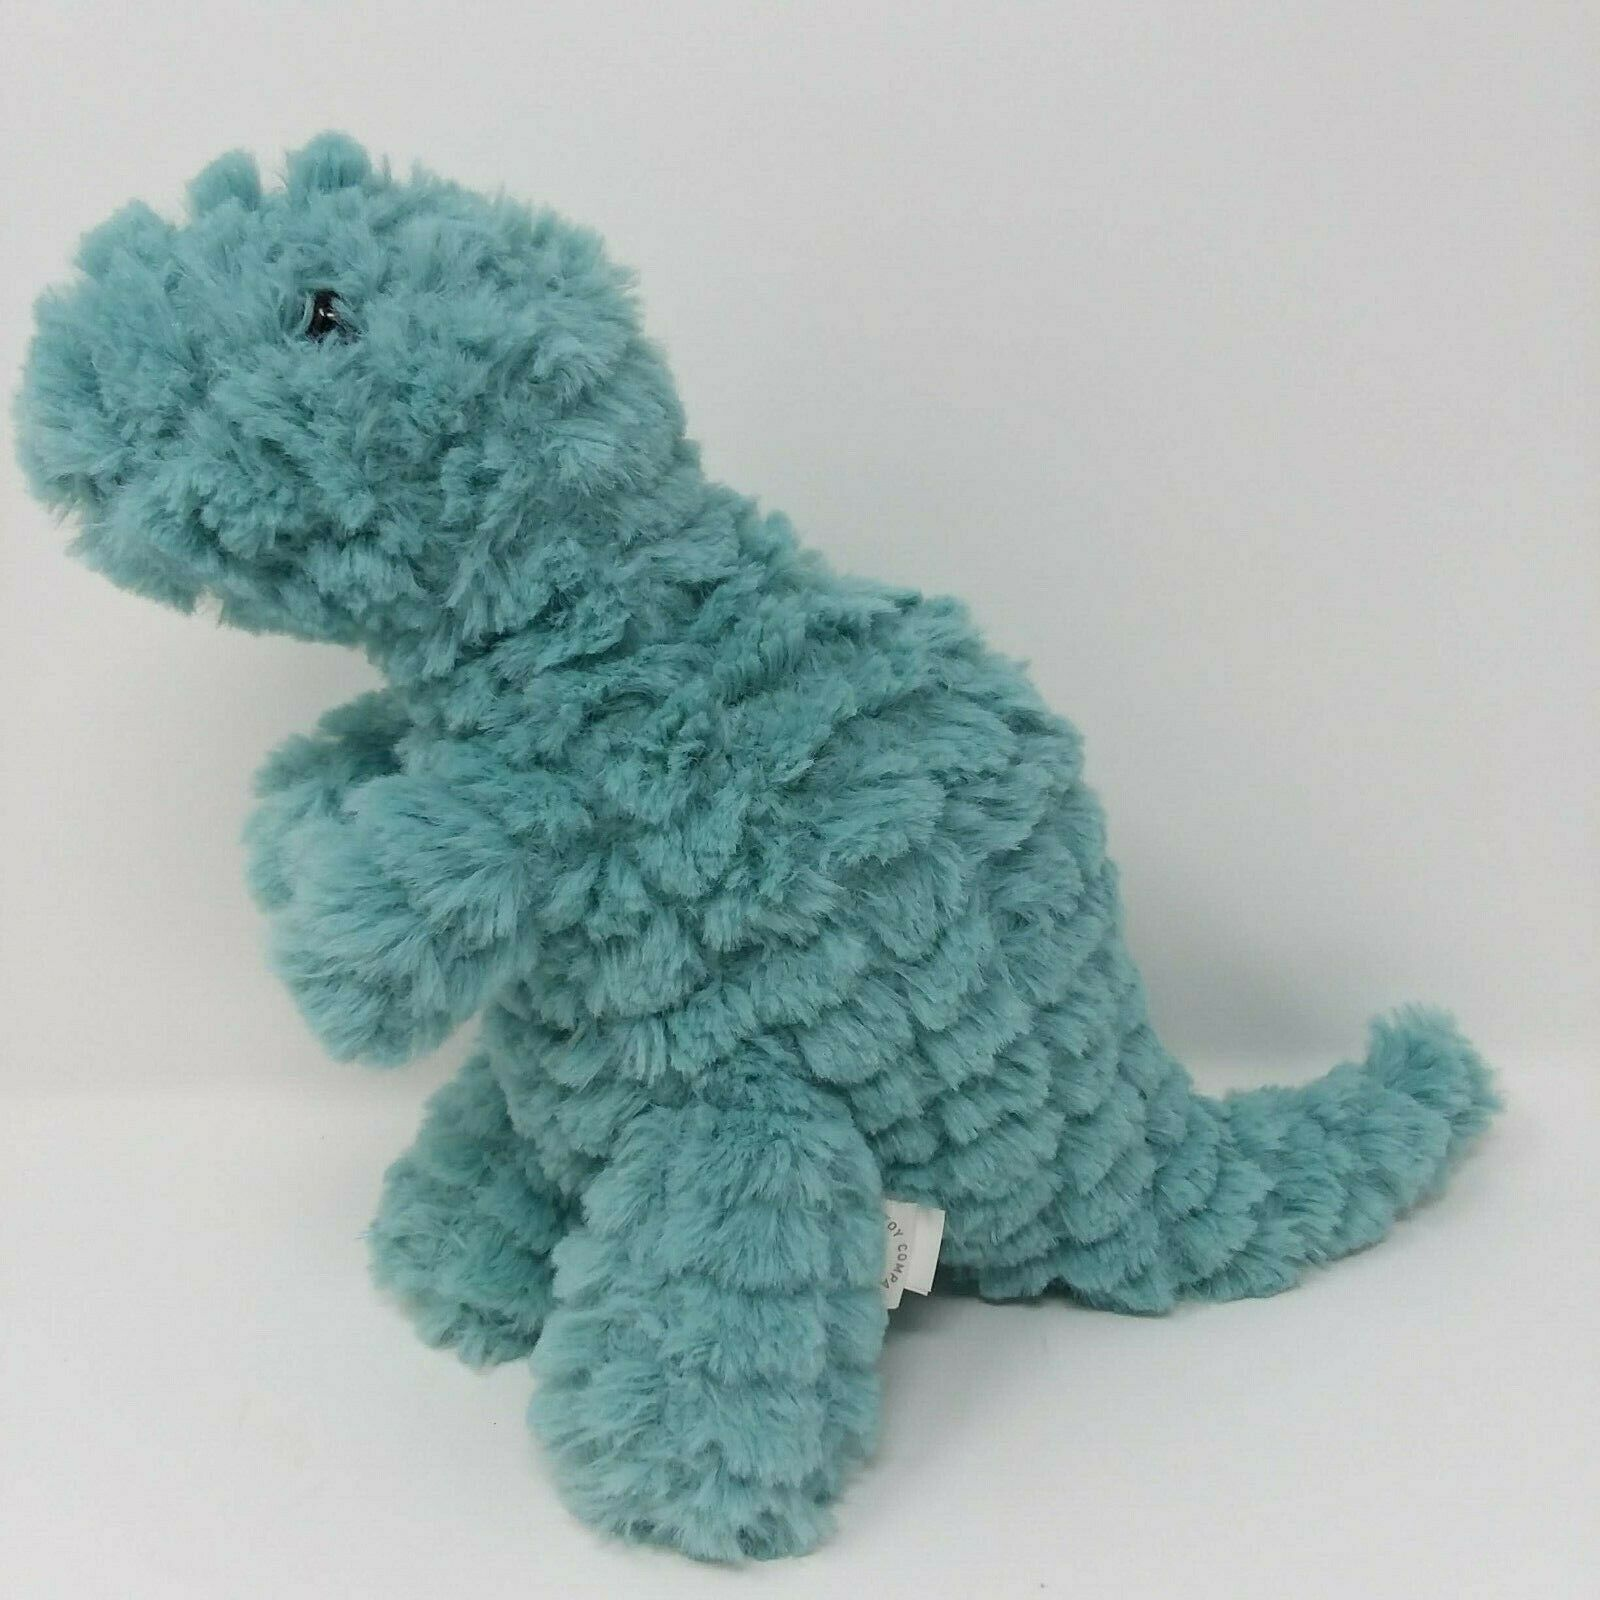 Primary image for Manhattan Toy Company Plush Light Blue Dinosaur Nursery Room Decor EUC